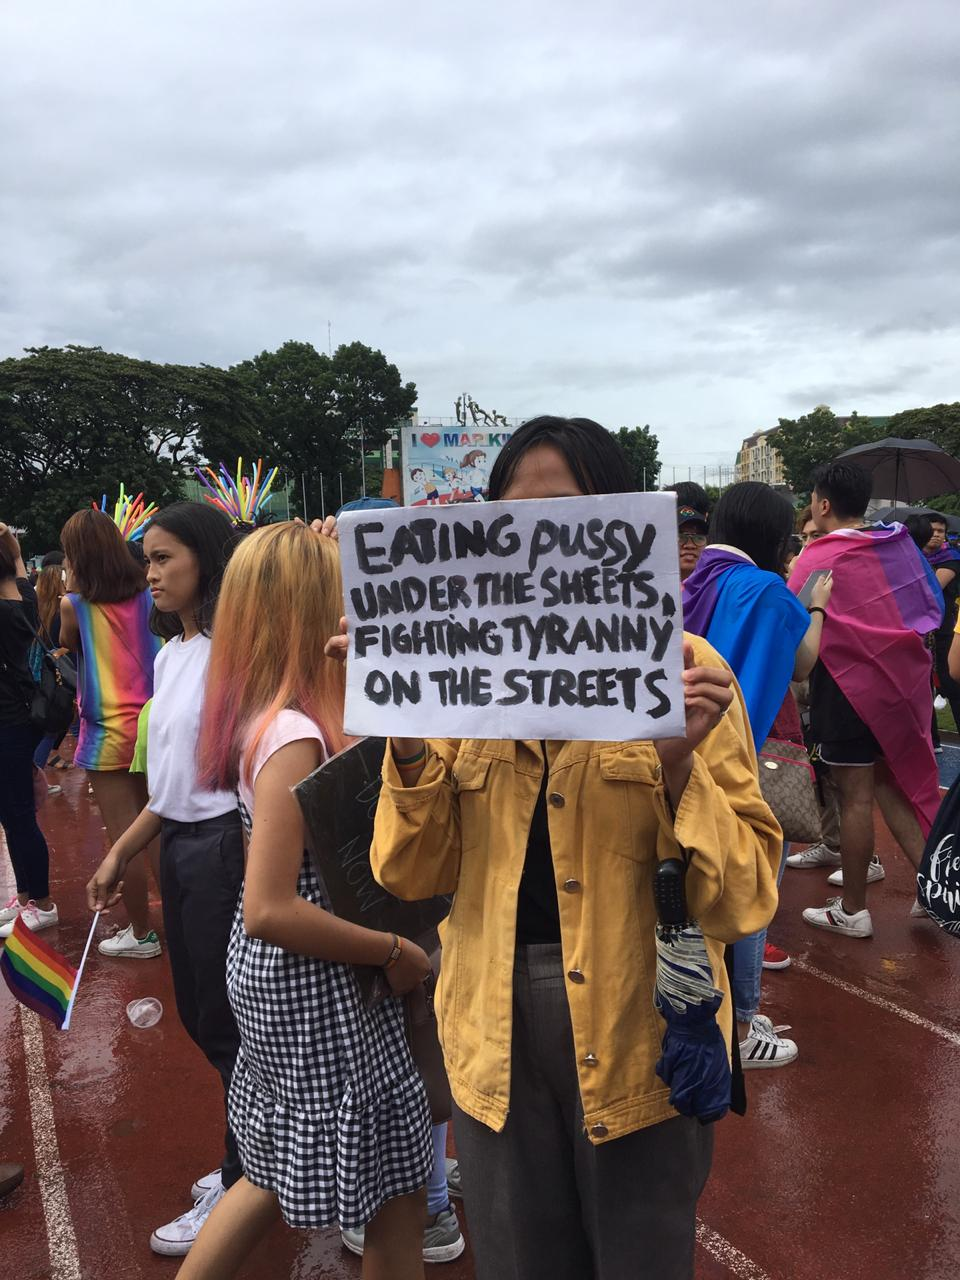 To what extent can the scope of the 2019 Metro Manila Pride March speak to our progress?